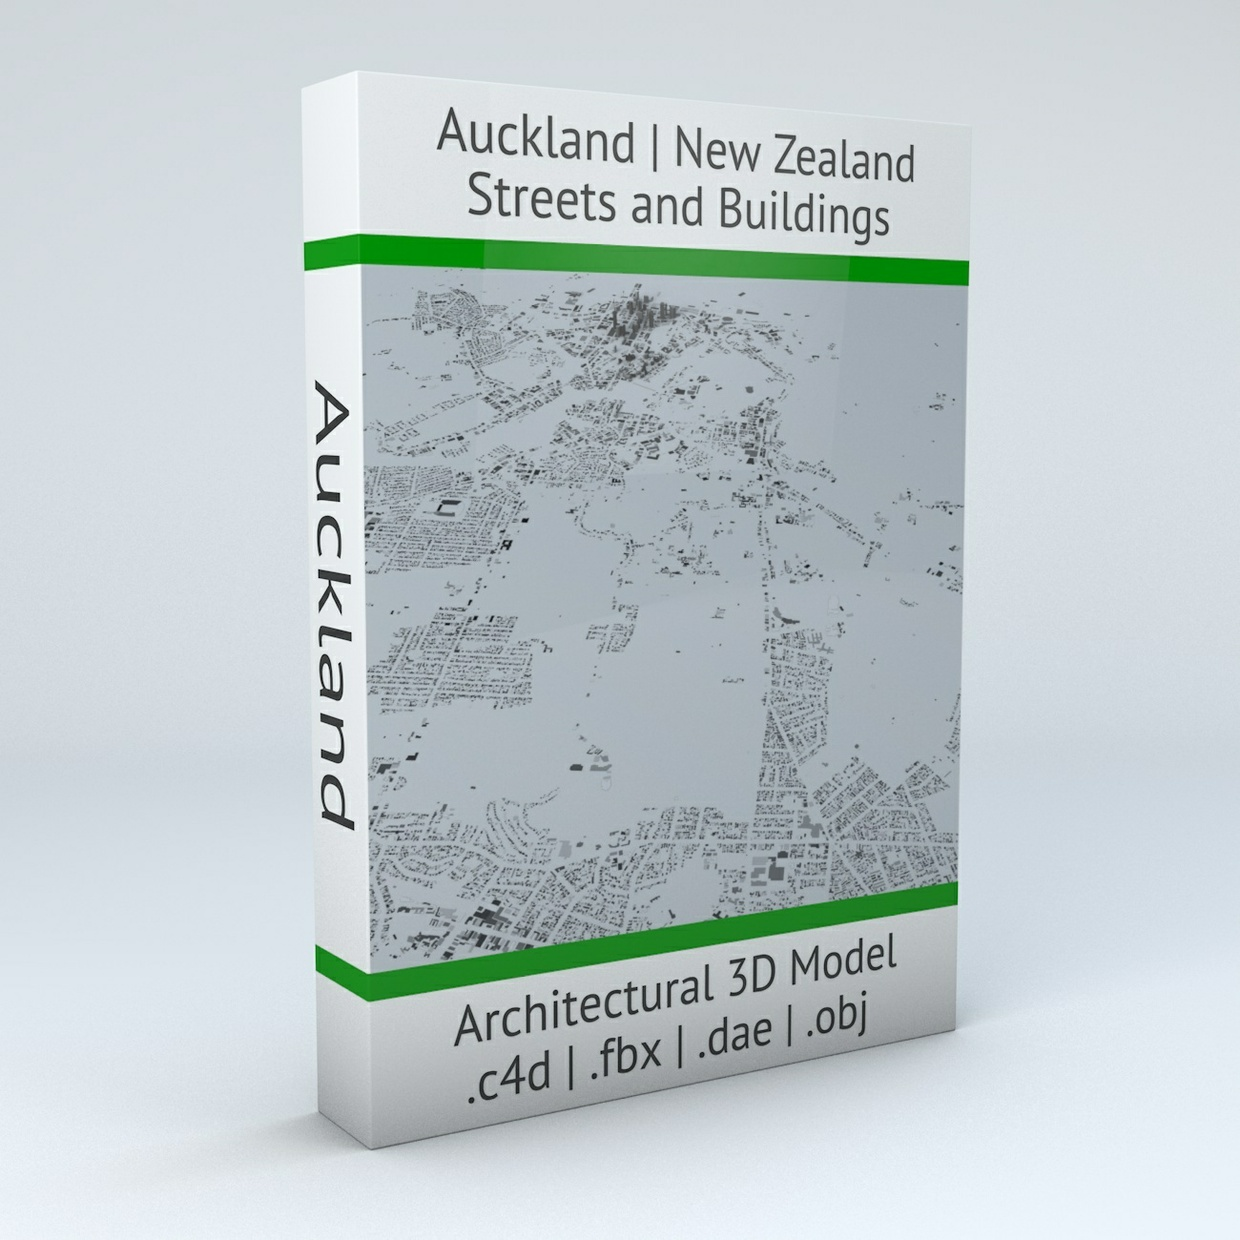 Auckland Streets and Buildings Architectural 3D Model